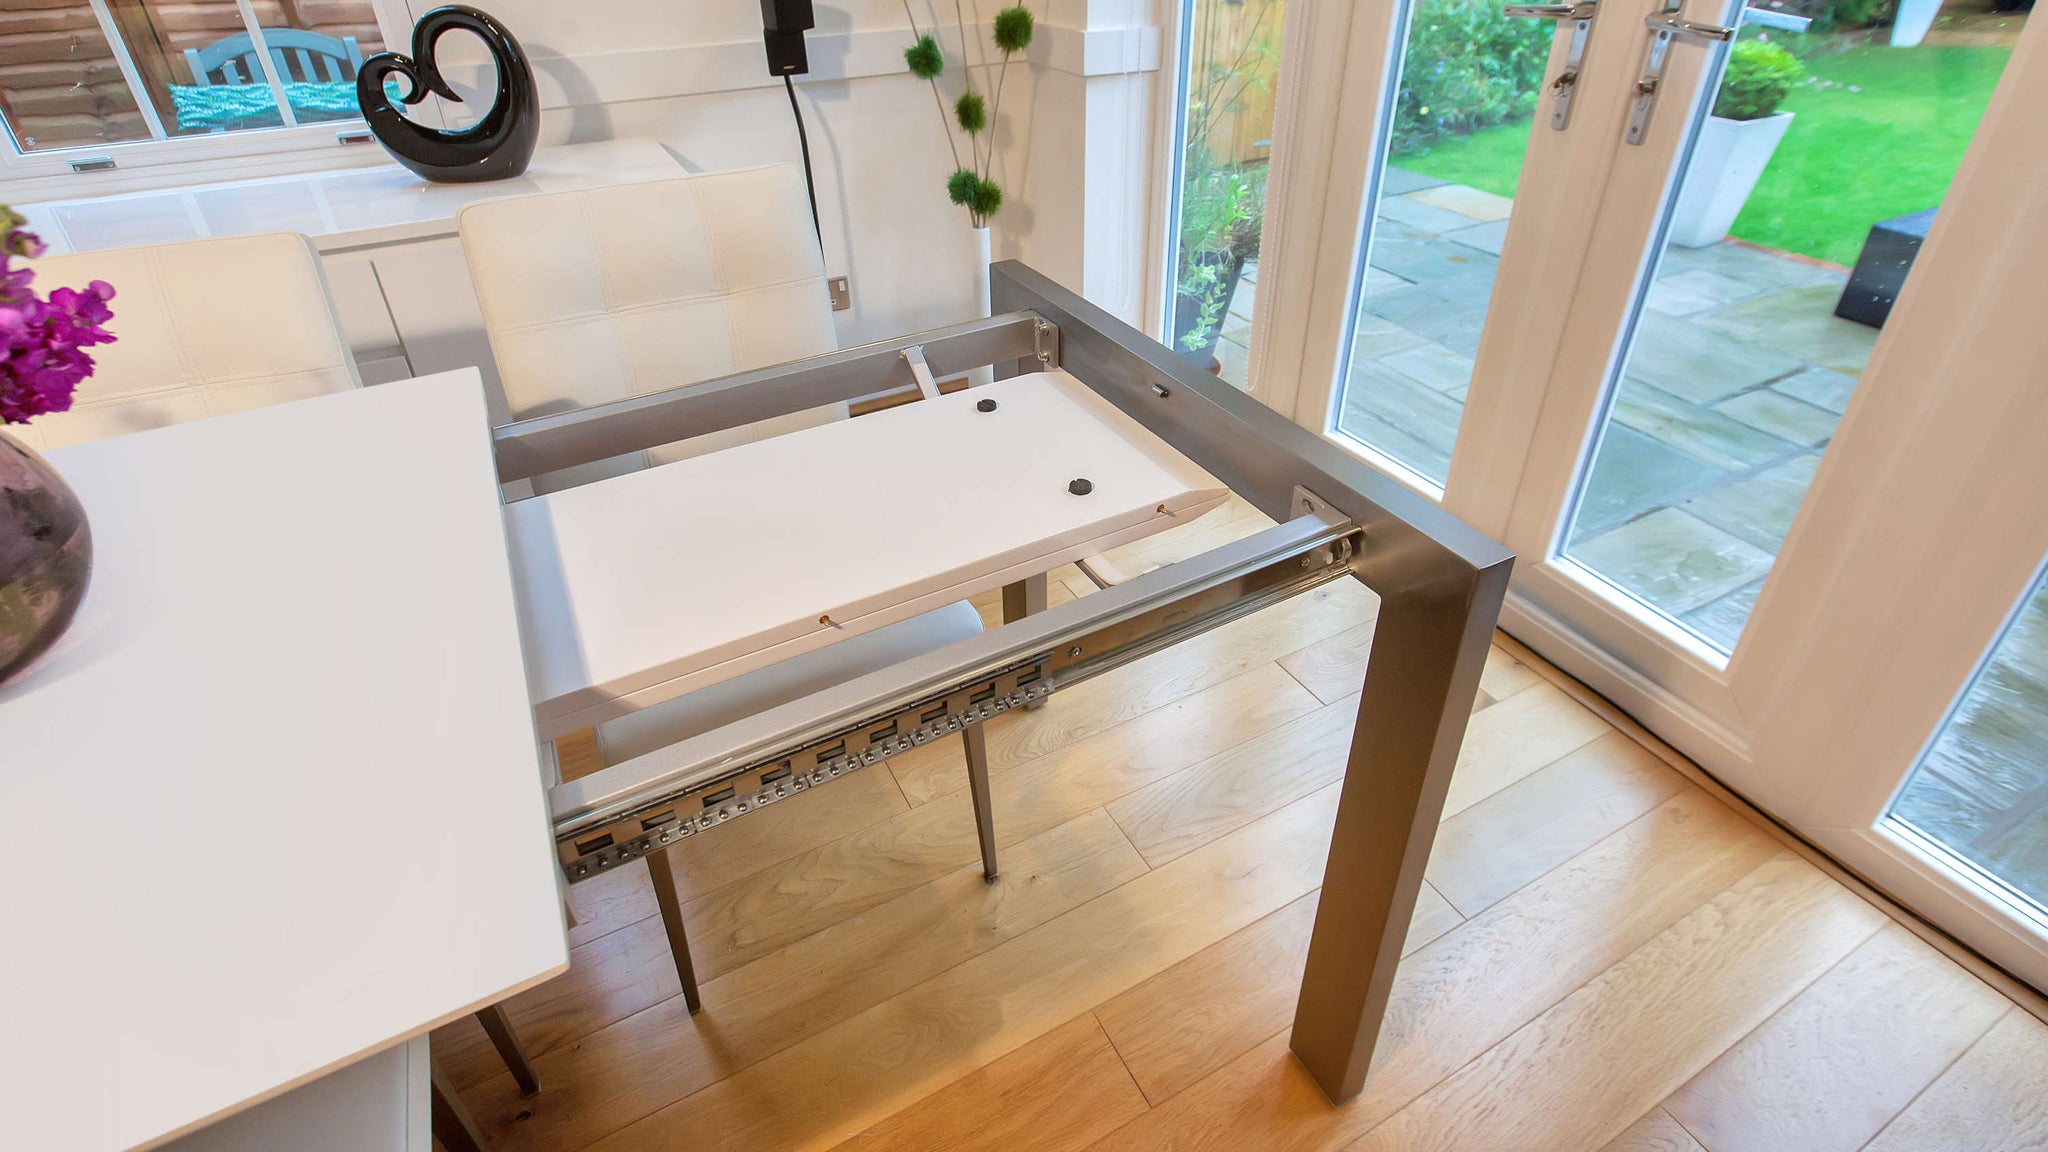 Extending Dining Table with Extension Storage